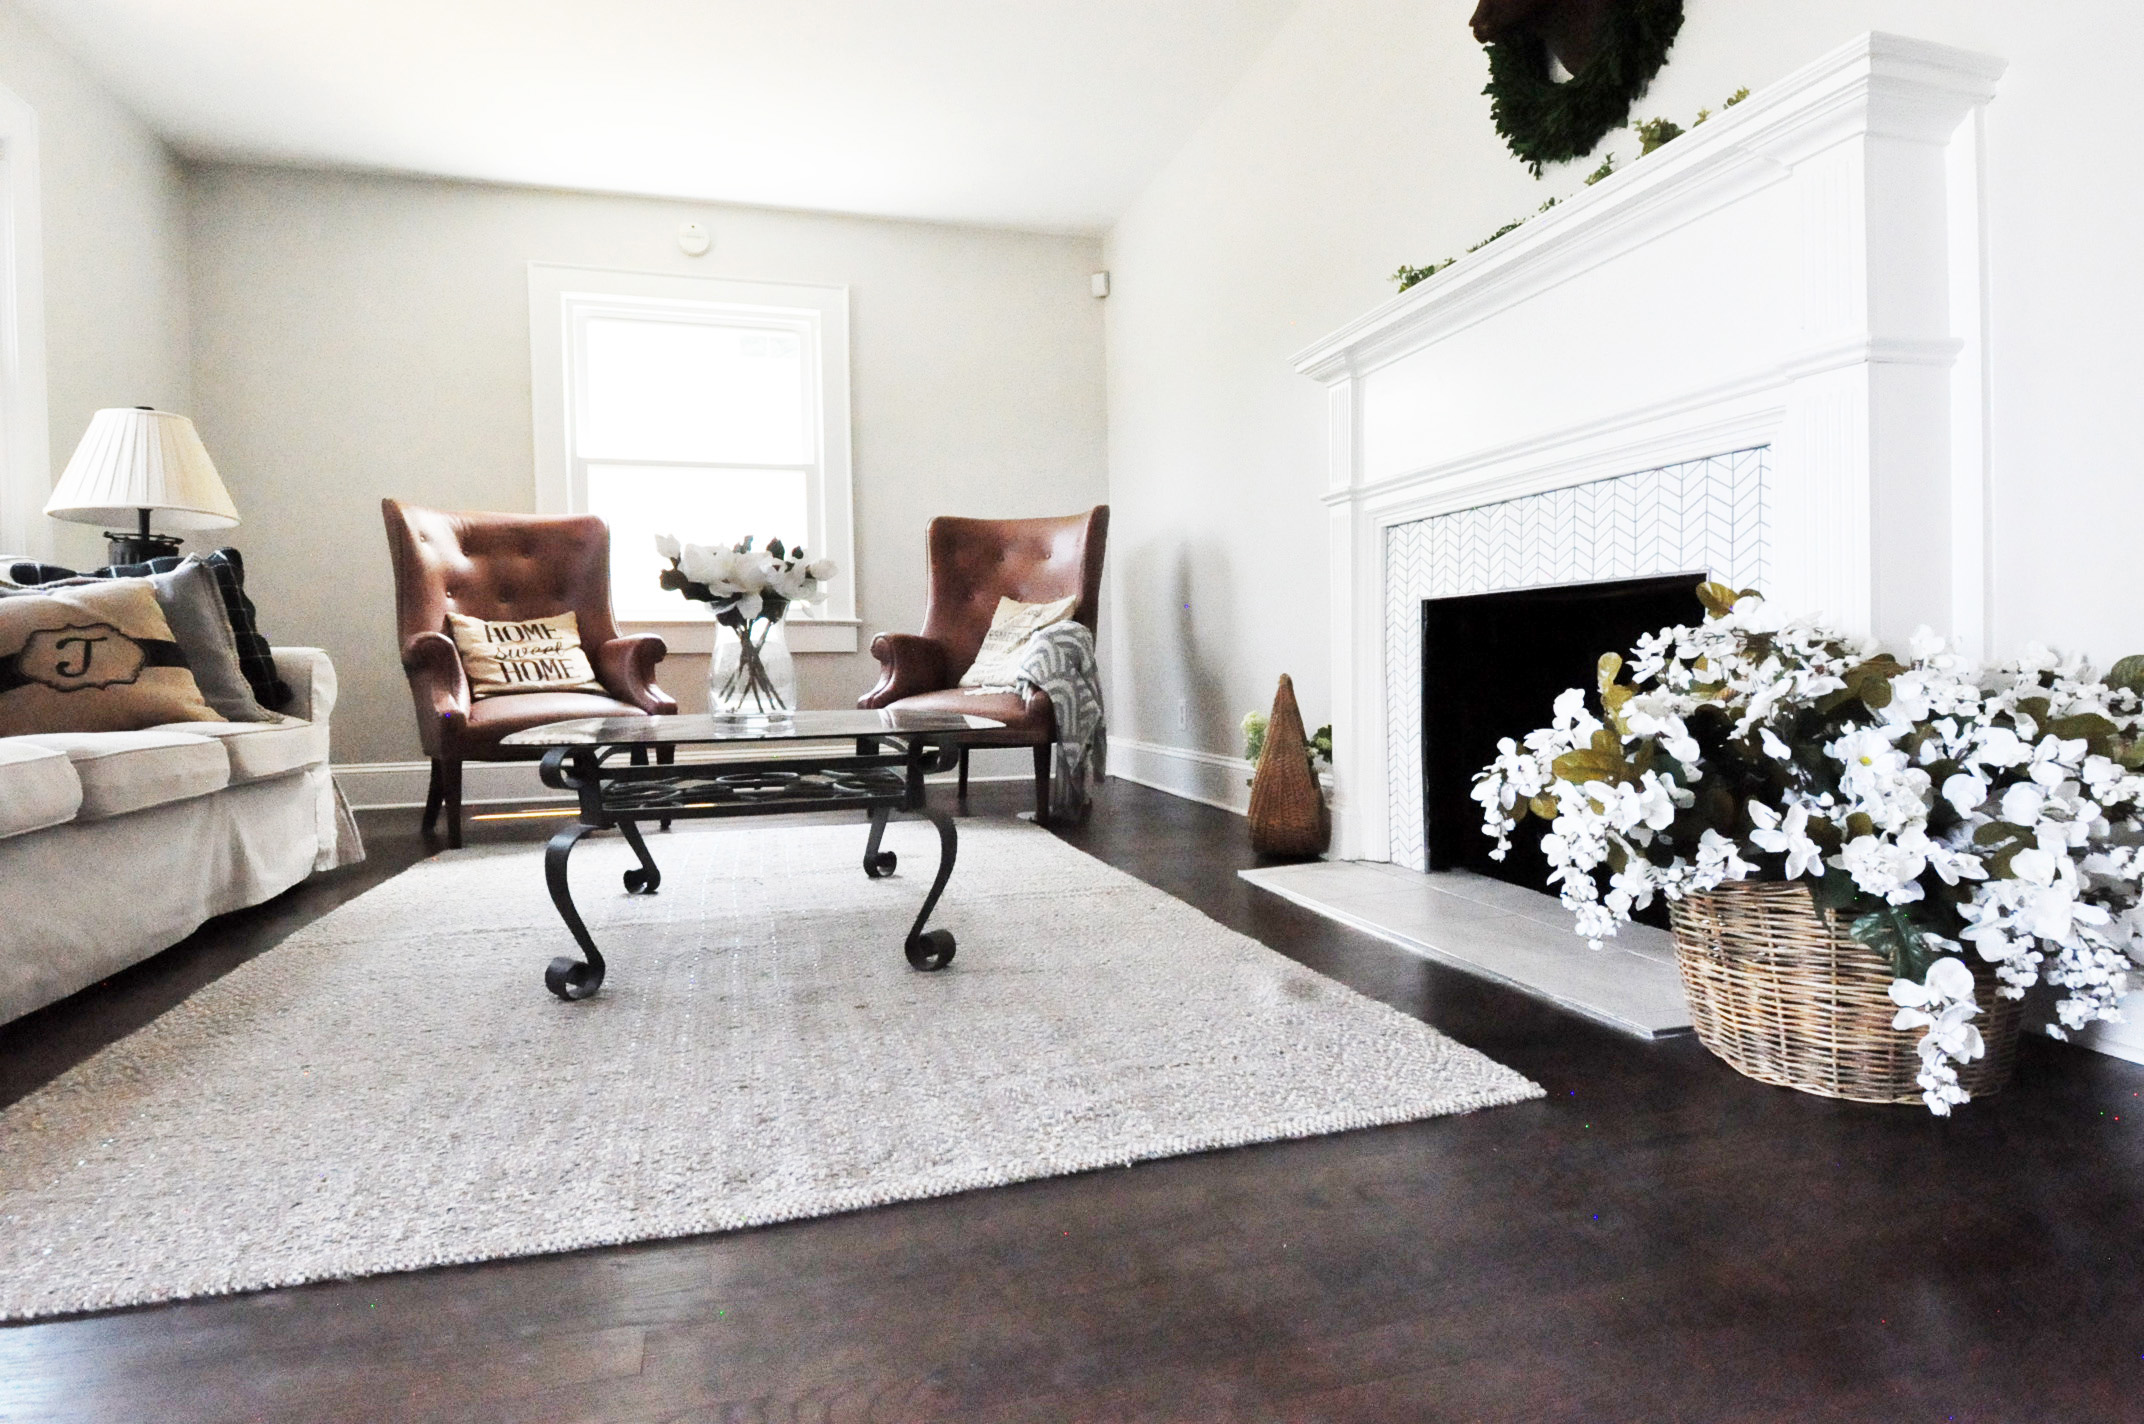 Haymount Homes Greenland Drive Fireplace 2_edited-1.jpg